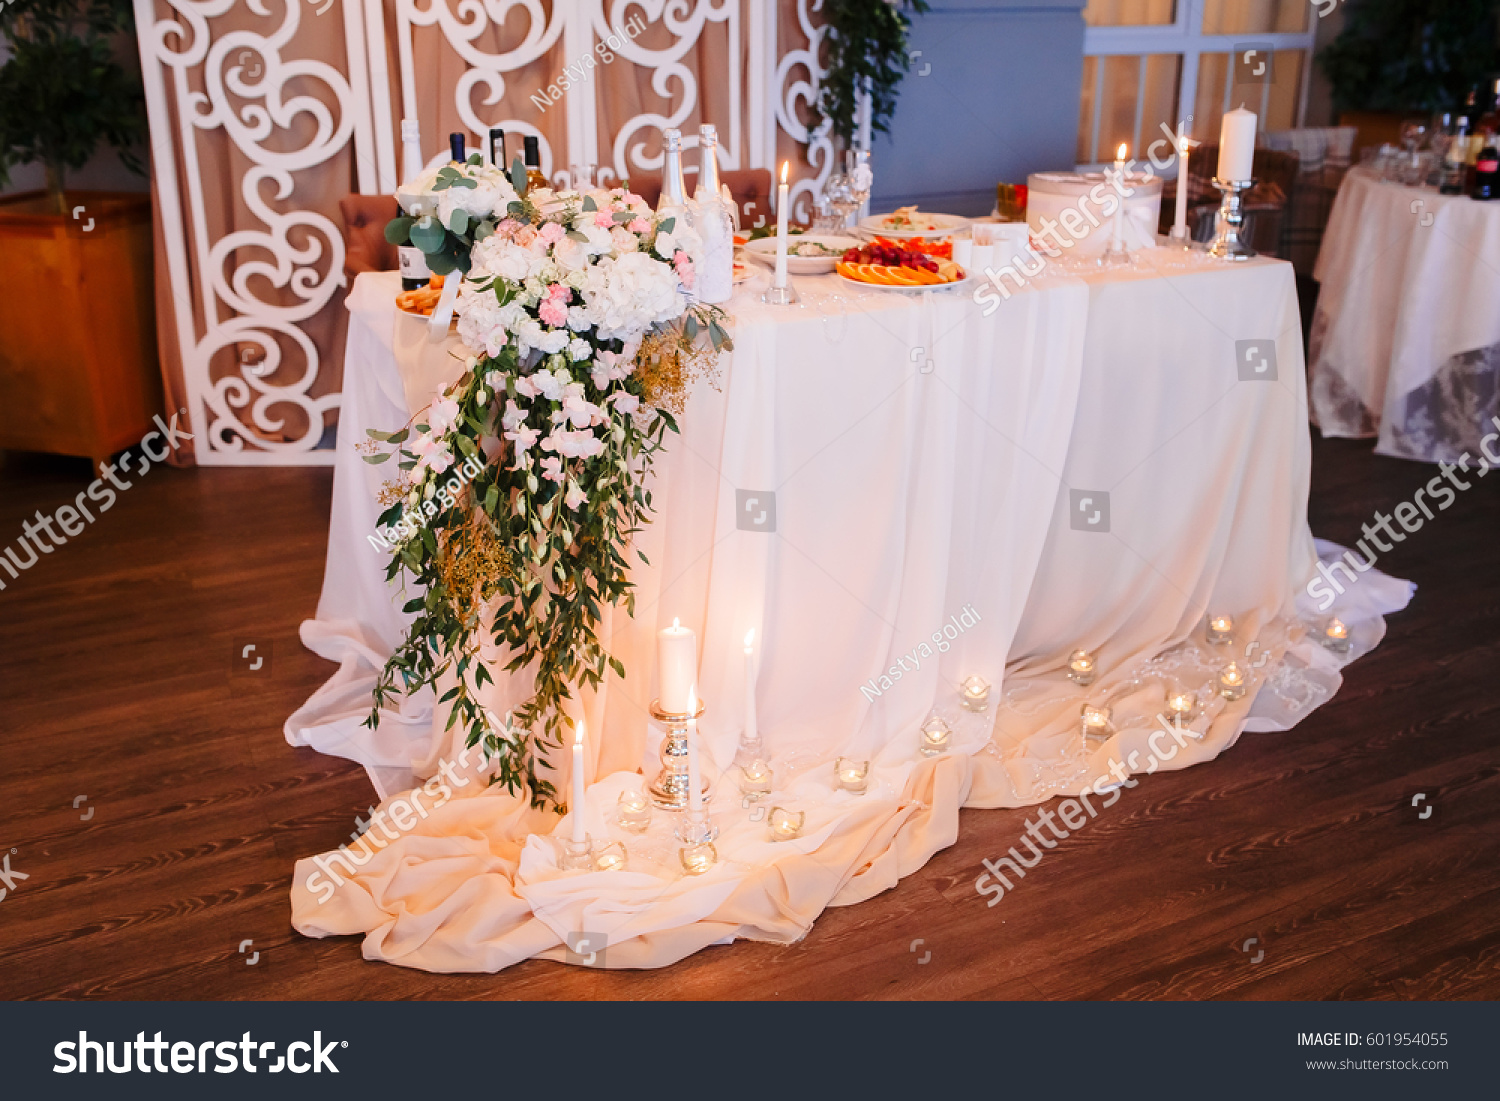 Elegant decorations wedding table lights Modern Wedding In The Style Rustic Table Decoration With Lamps And Candlestick The Elegant Dinner Table Indoors Wedding Reception Venue With Festive Decor Ez Canvas Wedding In The Style Rustic Table Decoration With Lamps And